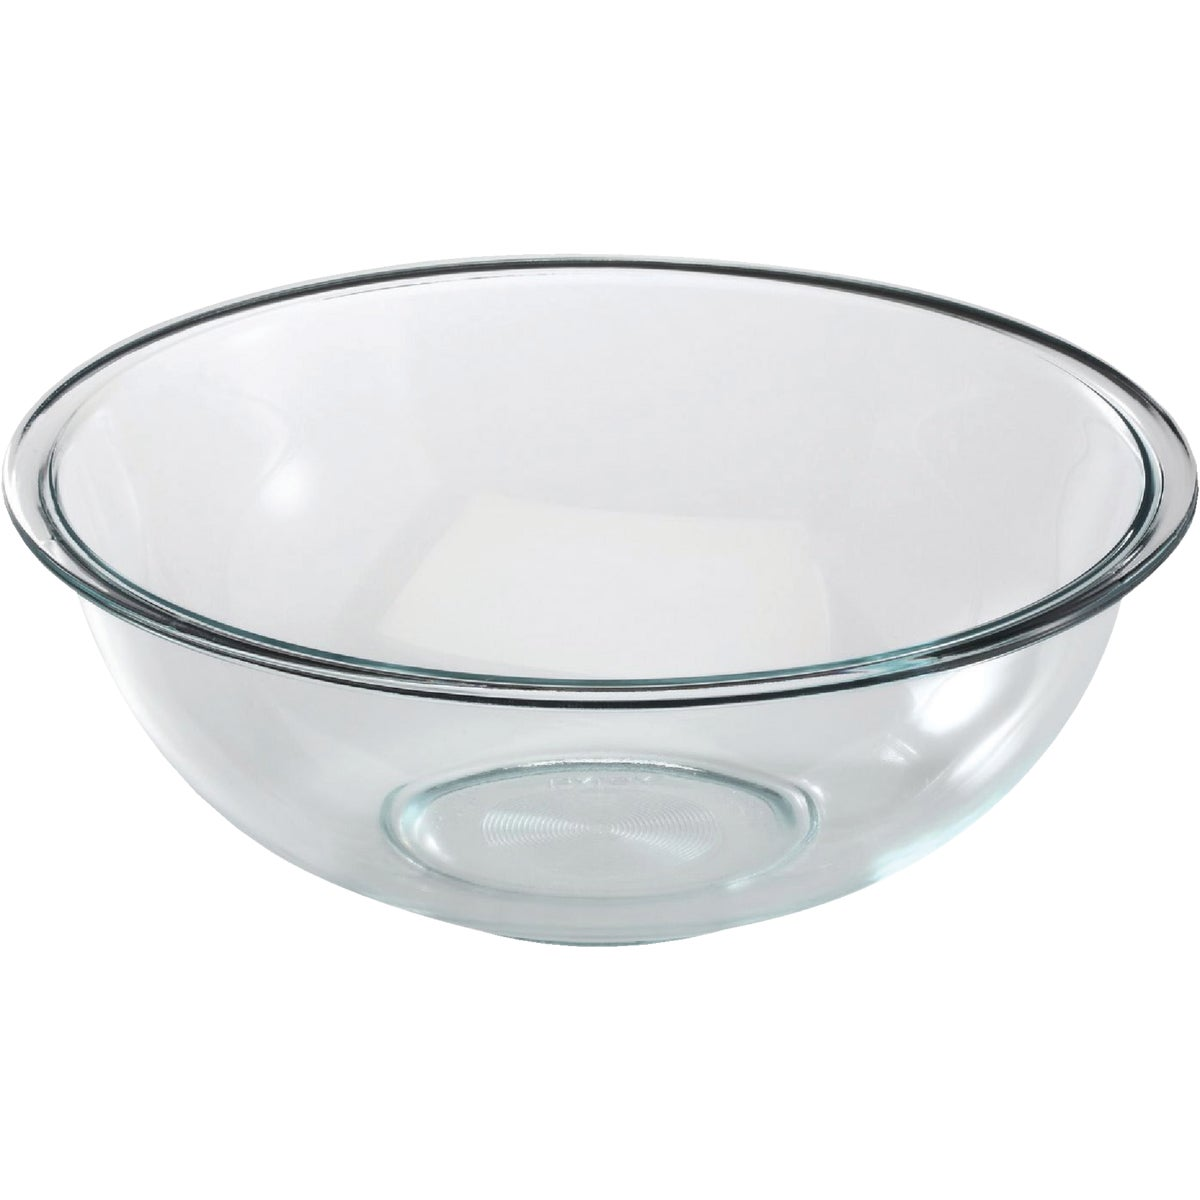 4QT MIXING BOWL - 6001043 by World Kitchen